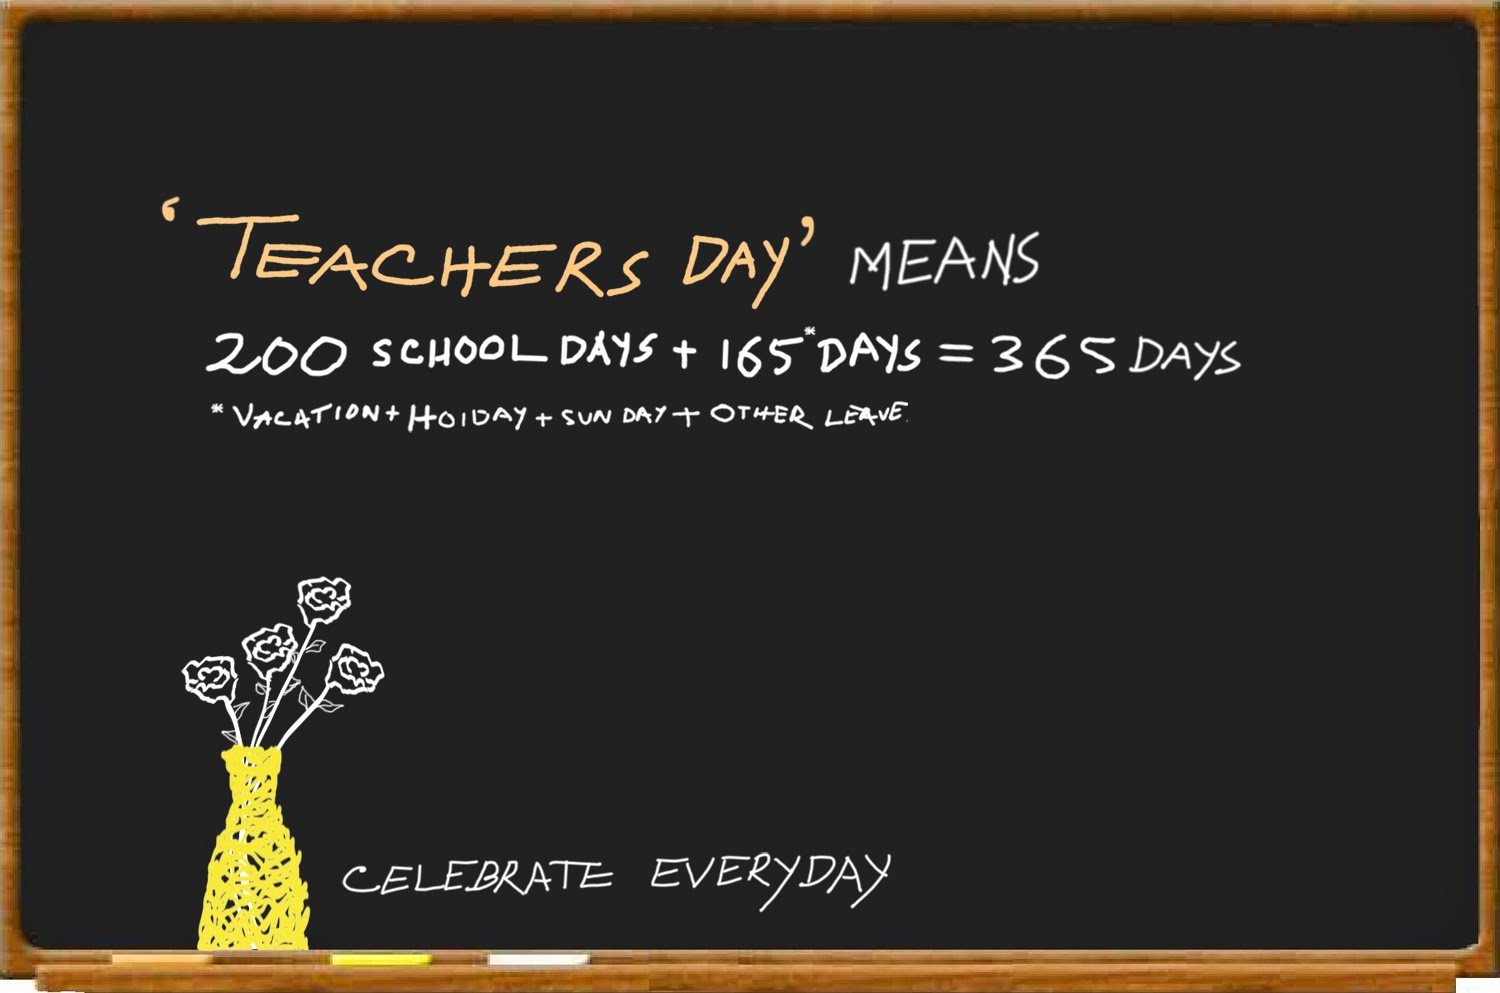 Download teachers day full hd wallpaper 1500x993 teachers day download teachers day full hd wallpaper 1500x993 wallpaper for mobile cell phone altavistaventures Image collections